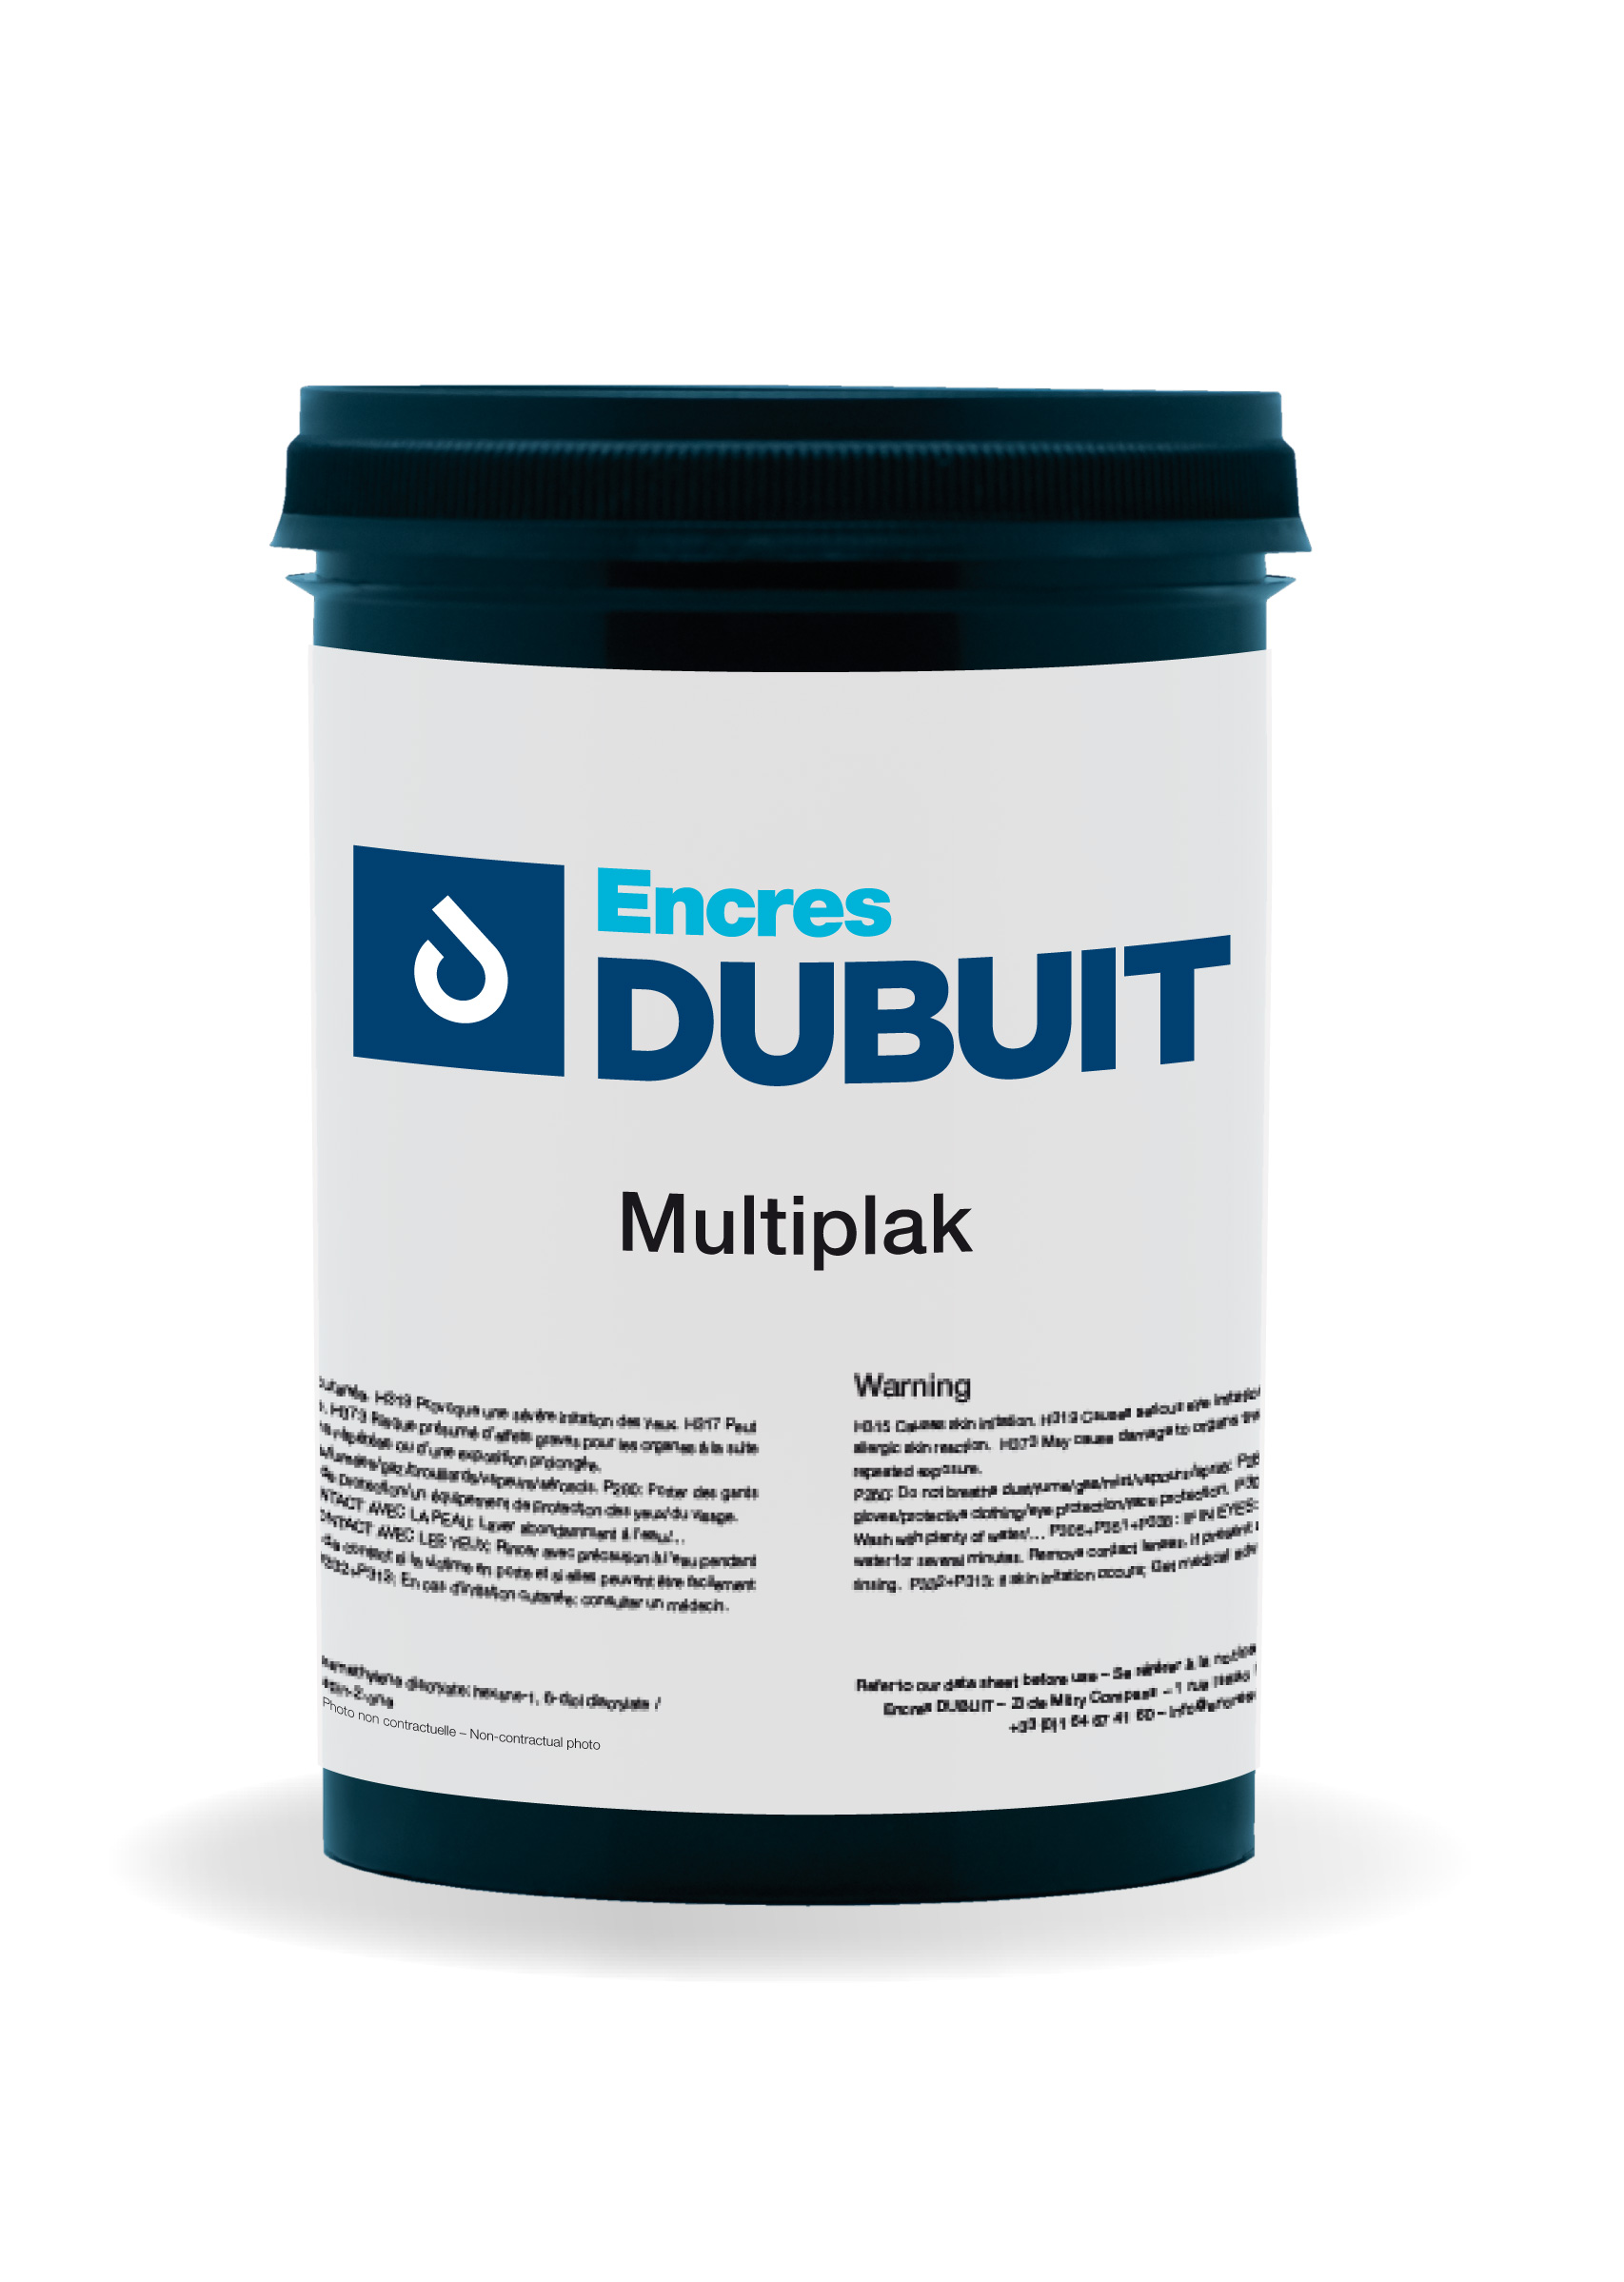 Serie Multiplak Encres DUBUIT UV Screen Printing Ink